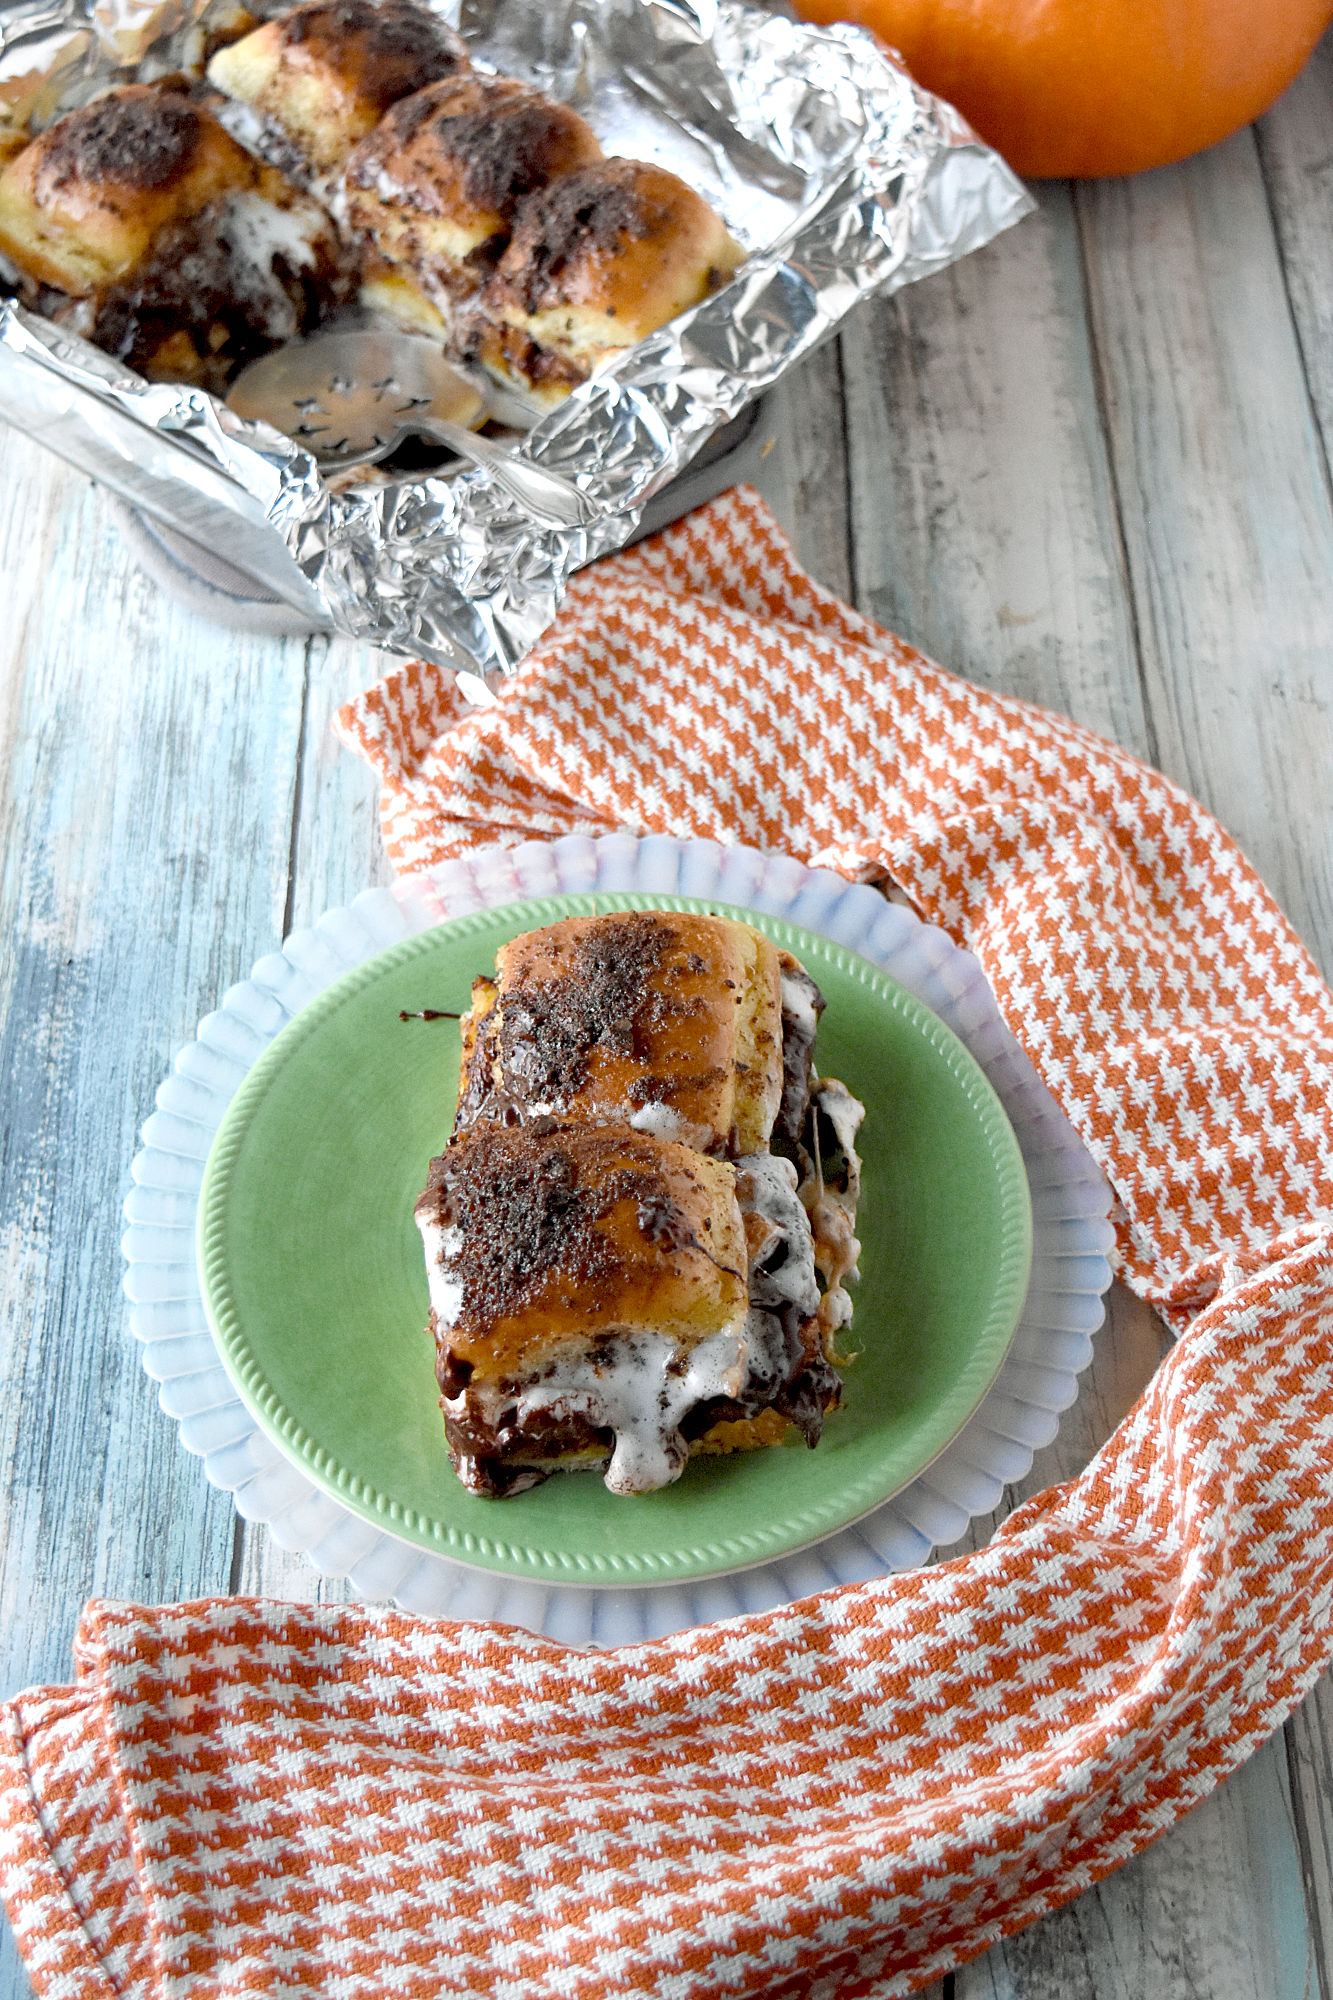 Pumpkin S'Mores Sliders are easy to make, are messy to eat, and taste perfectly delicious. The combination of the spiced pumpkin, chocolate, pecans, and caramel sauce are perfect with the sweet Hawaiian rolls. #PumpkinWeek